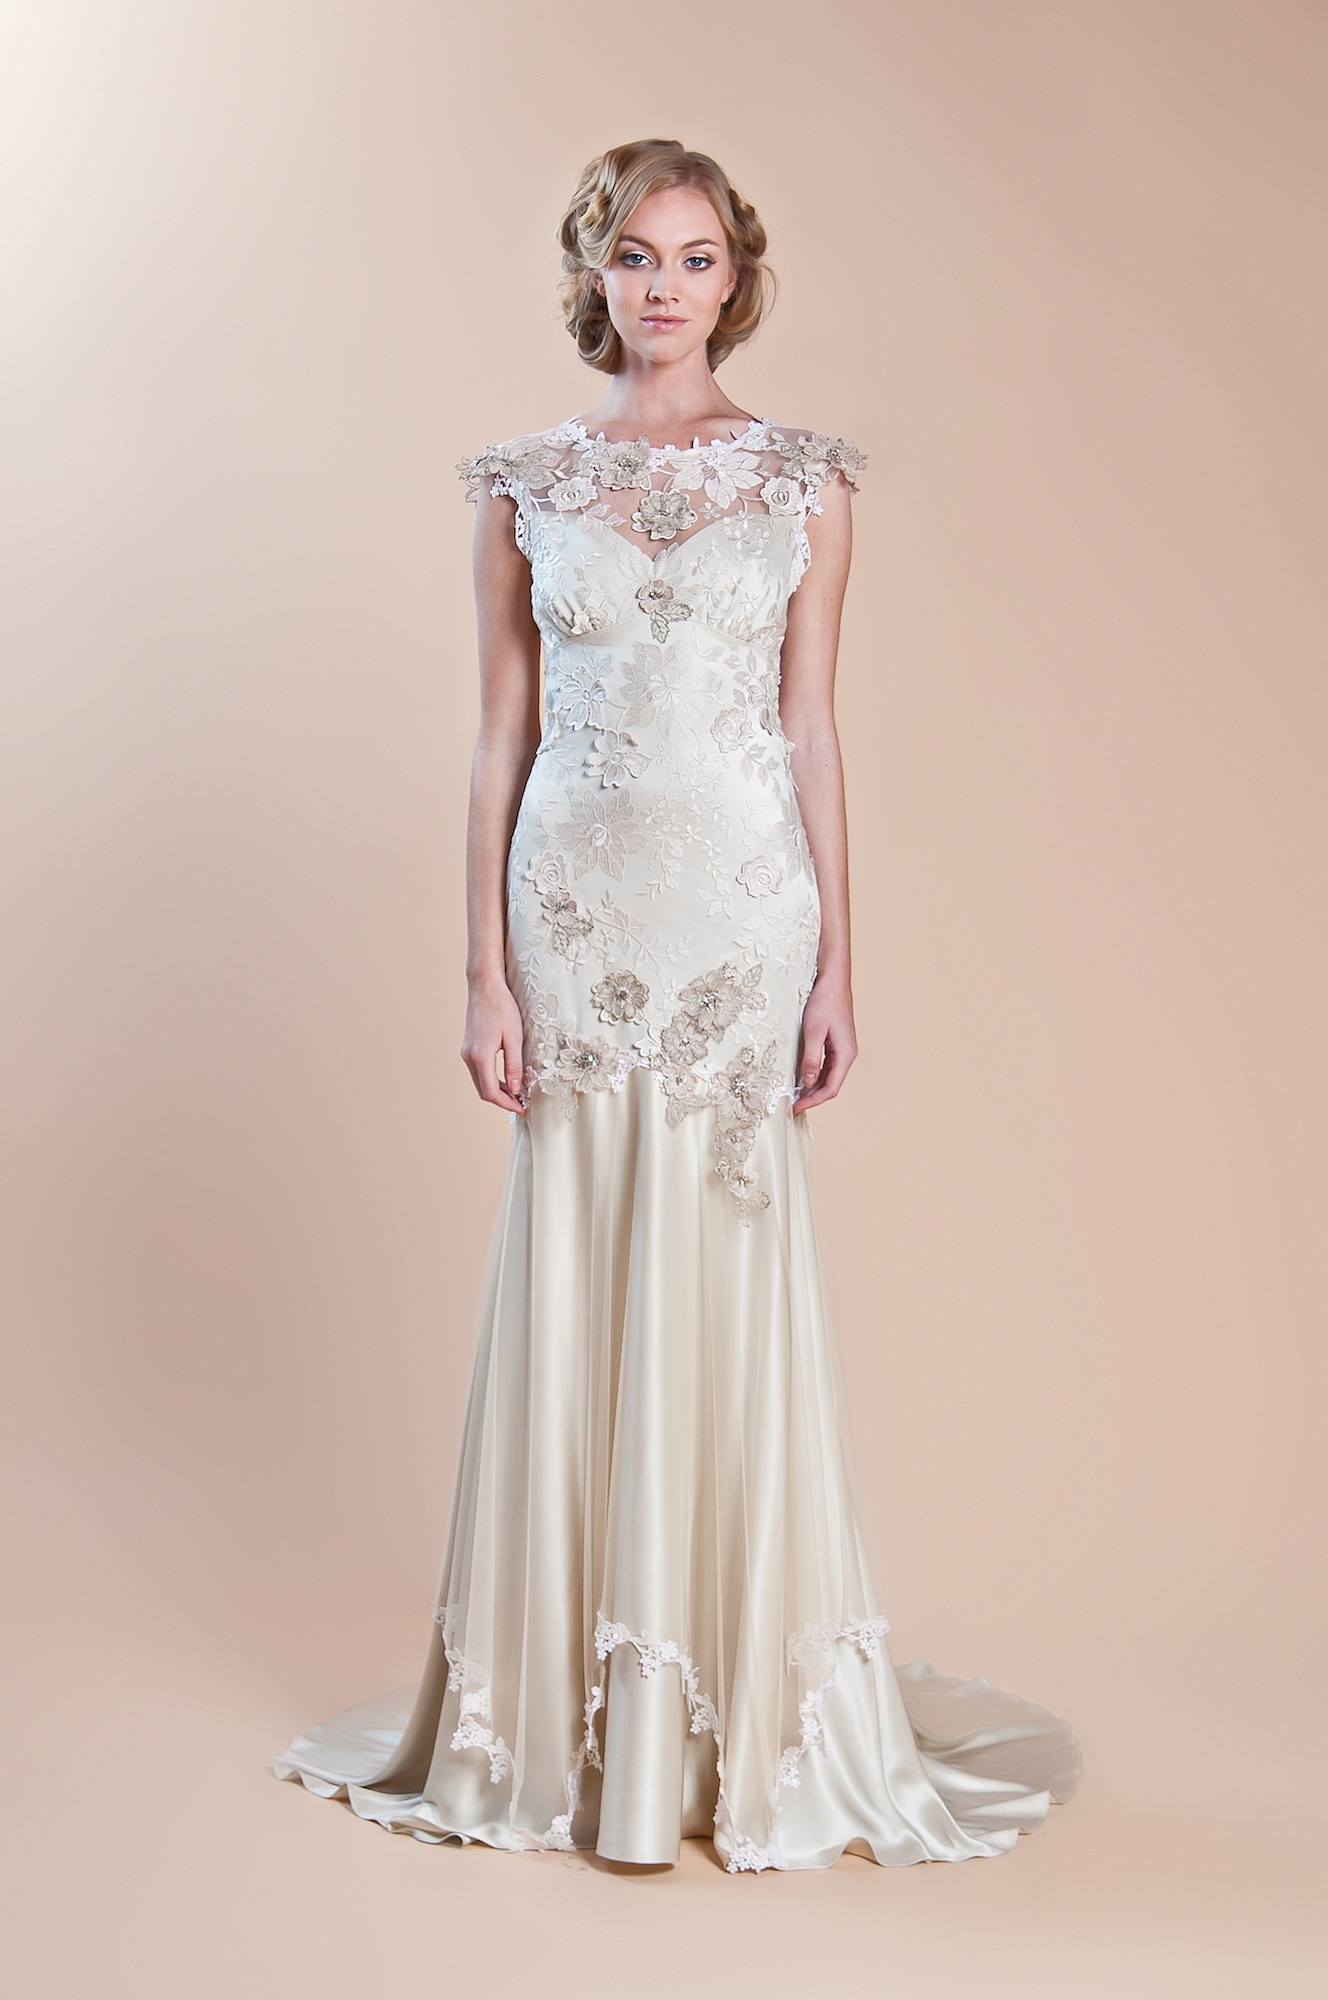 2013 wedding dress claire pettibone windsor rose